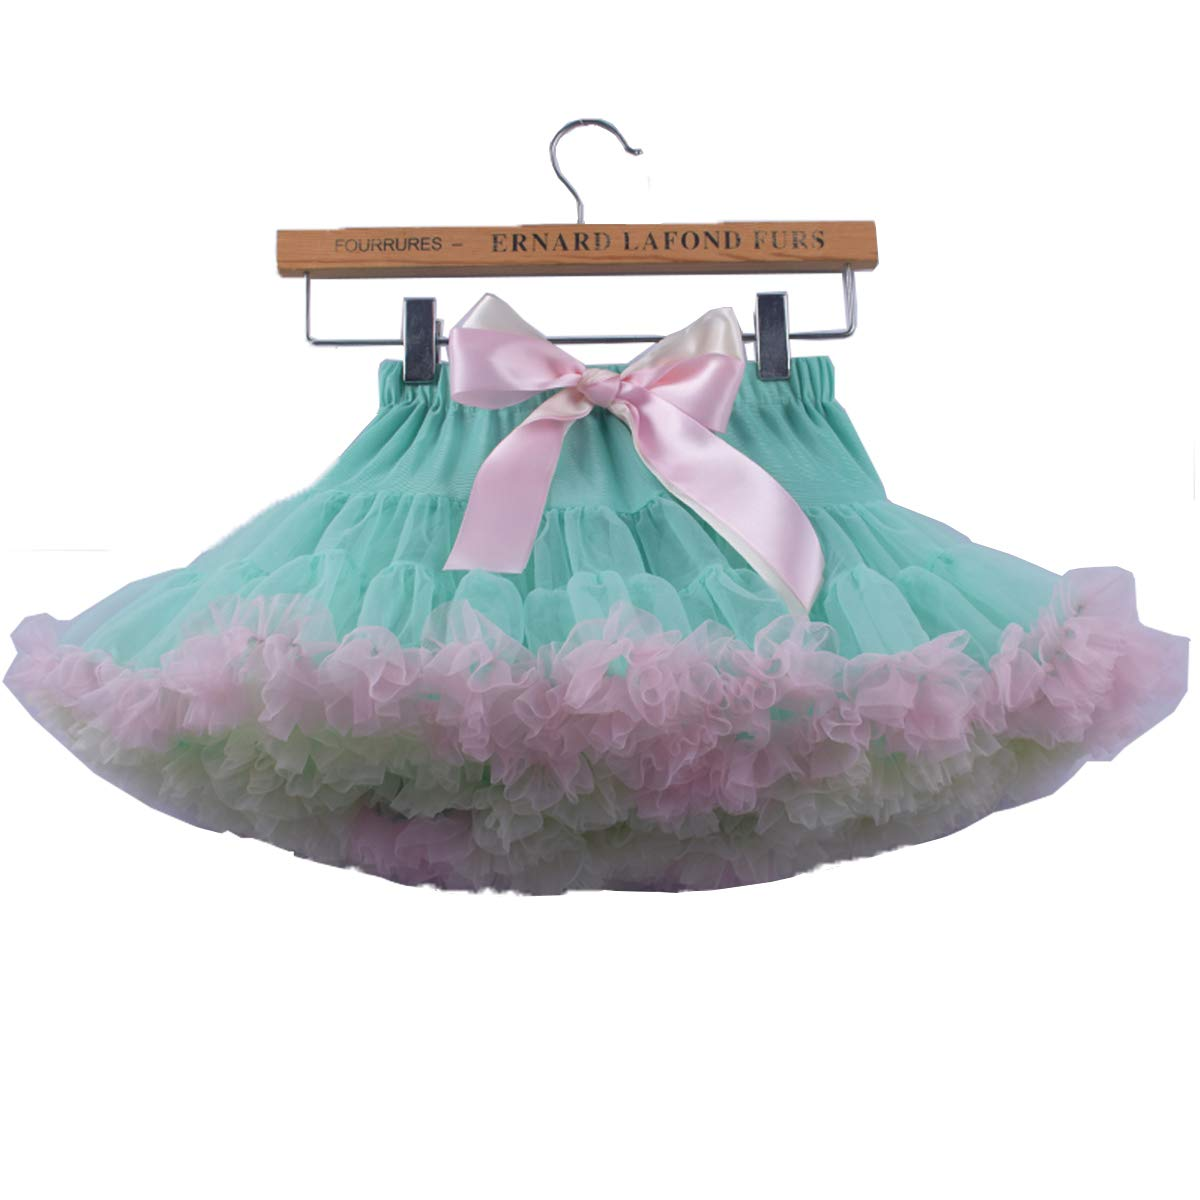 storeofbaby Girls Princess Tutu Skirt Elastic Waist Ballet Petticoat Outfit by storeofbaby